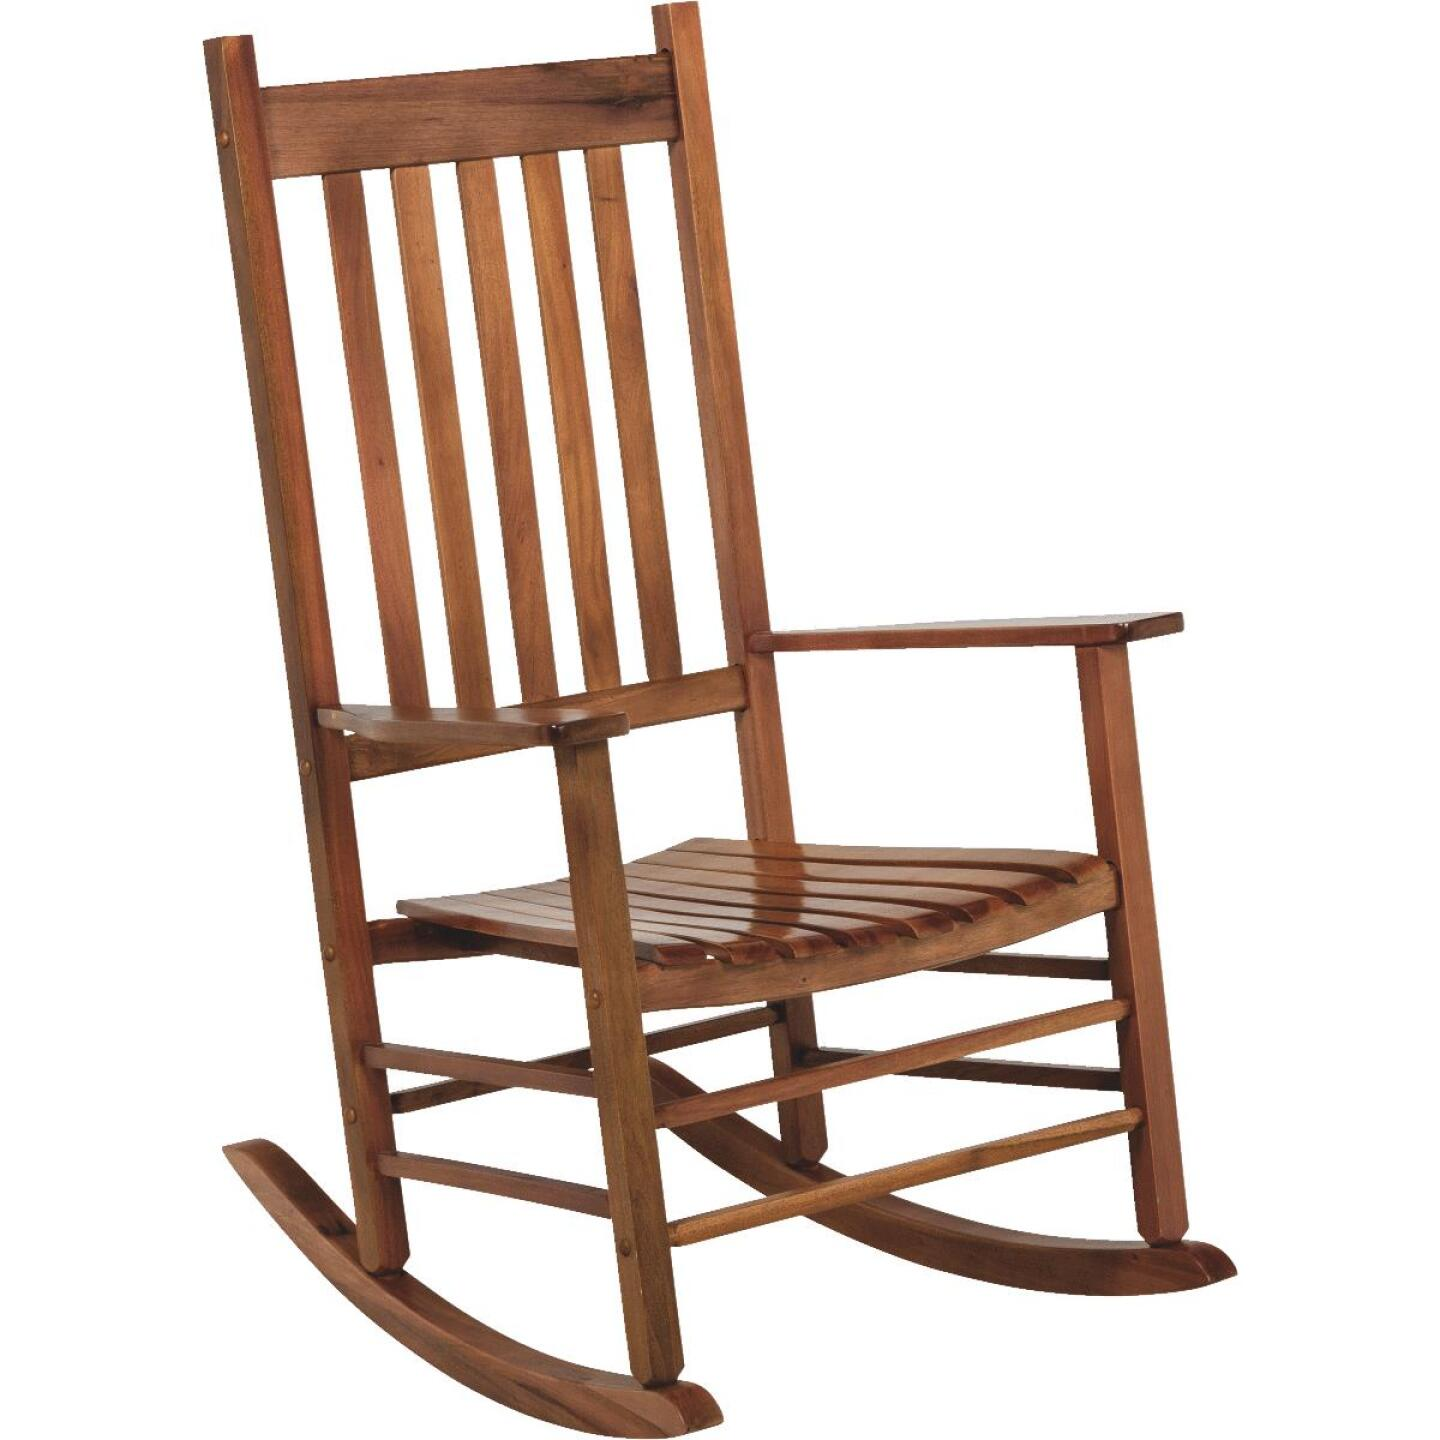 Jackpost Natural Wood Mission Rocking Chair Image 1